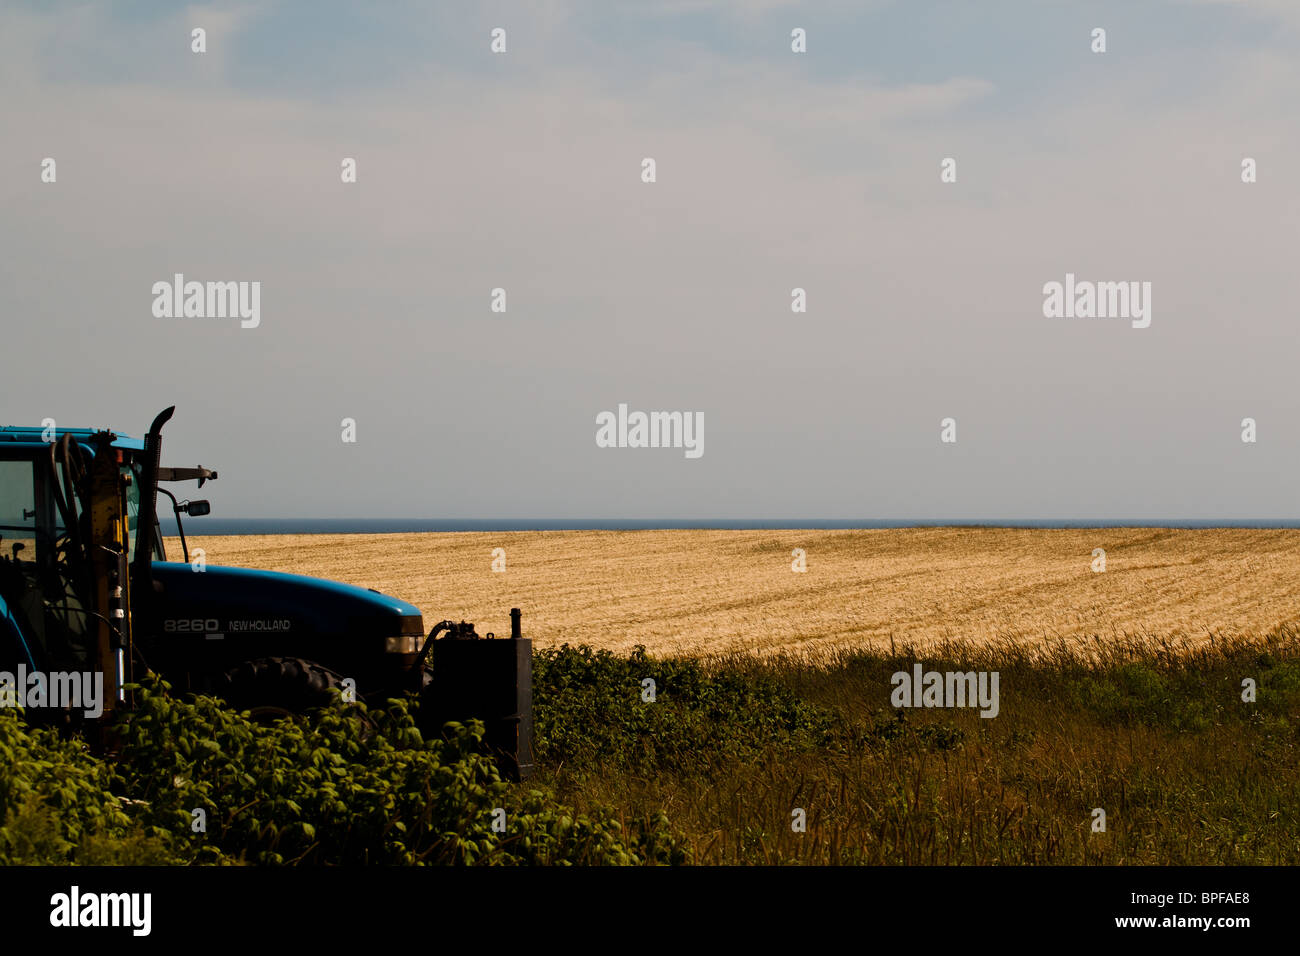 A tractor is parked in the grass beside a field. - Stock Image